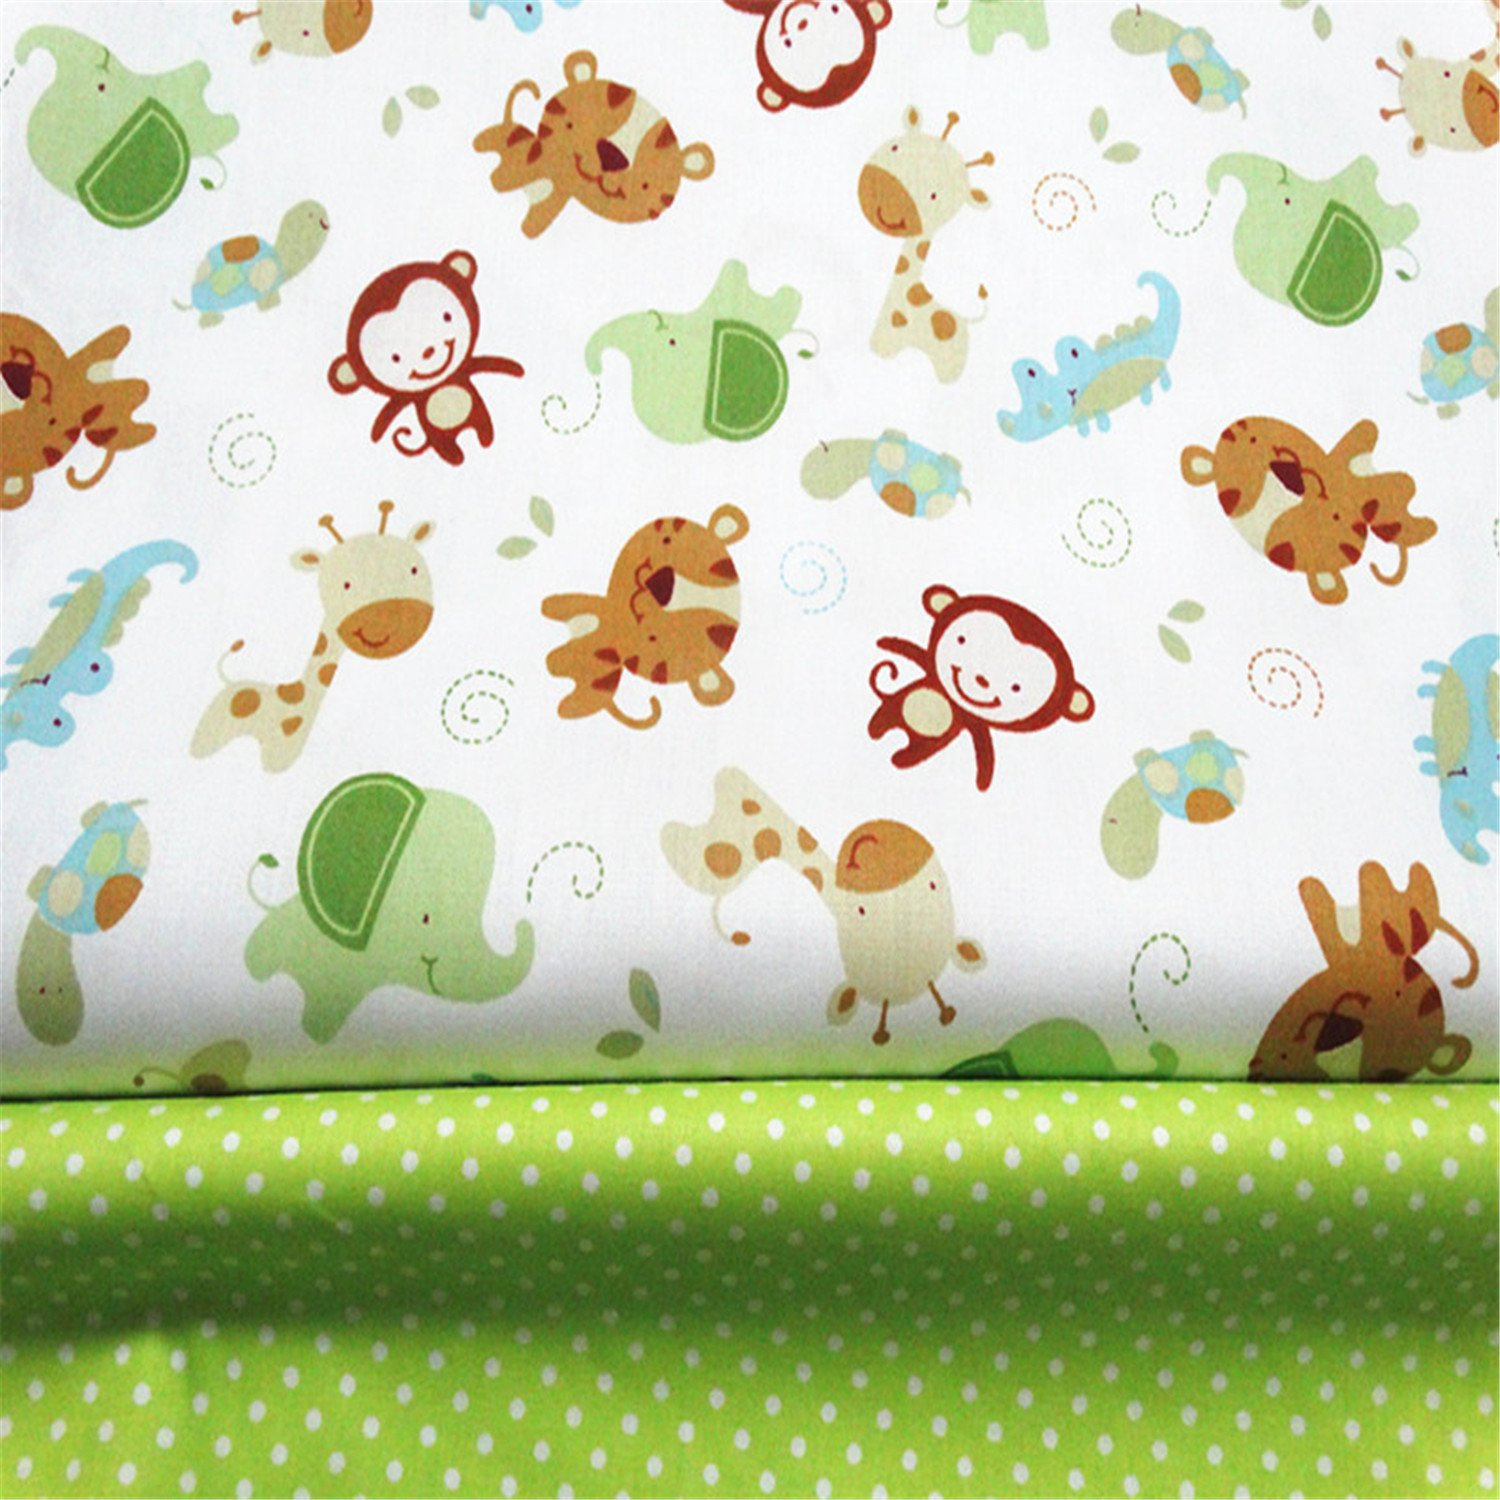 Amazon.com: FUYA 2pieces160cmx100cm Monkey Dots Cotton Fabric Patchwork Tissue Cloth Handmade DIY Quilting Sewing Baby&Children Sheets Dress Material